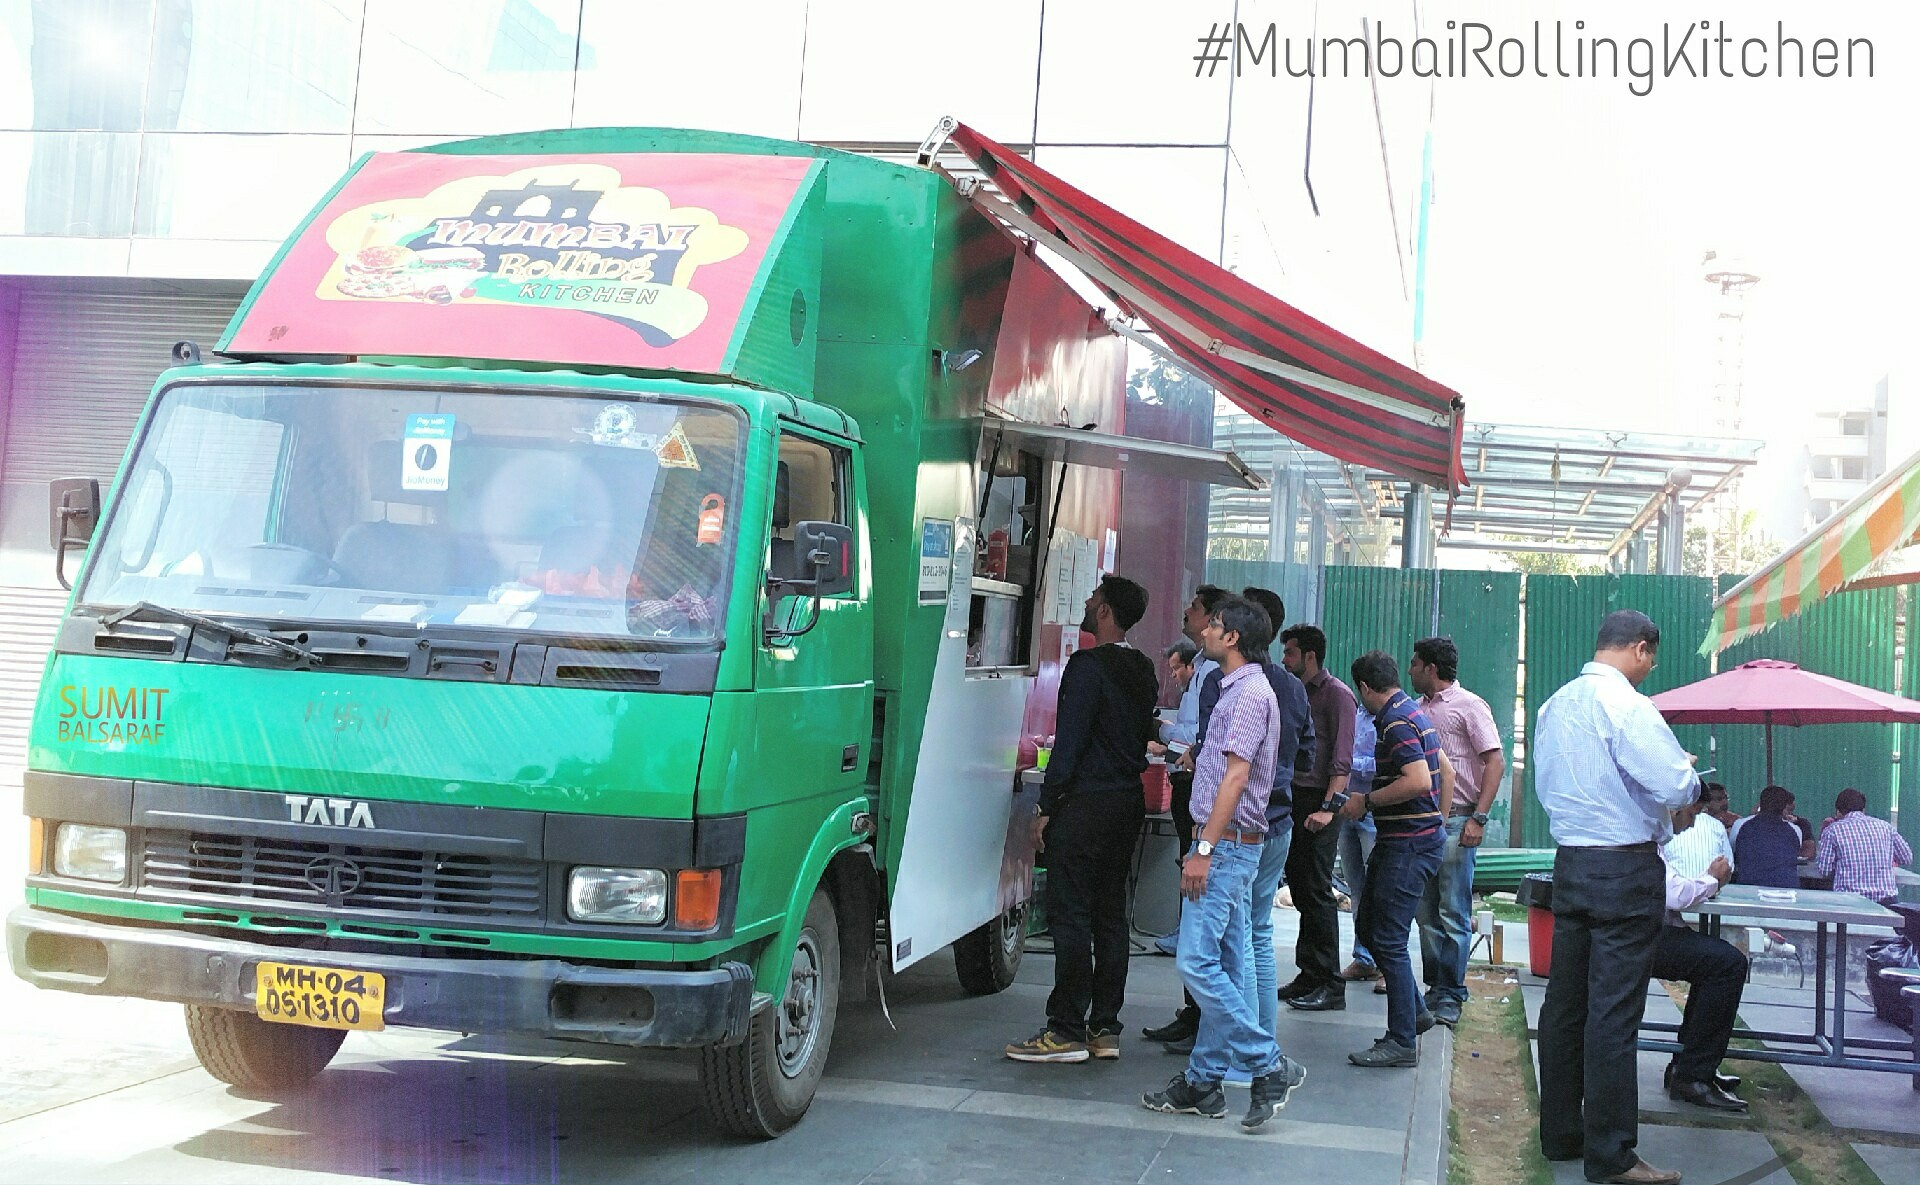 Mumbai Rolling Kitchen food truck